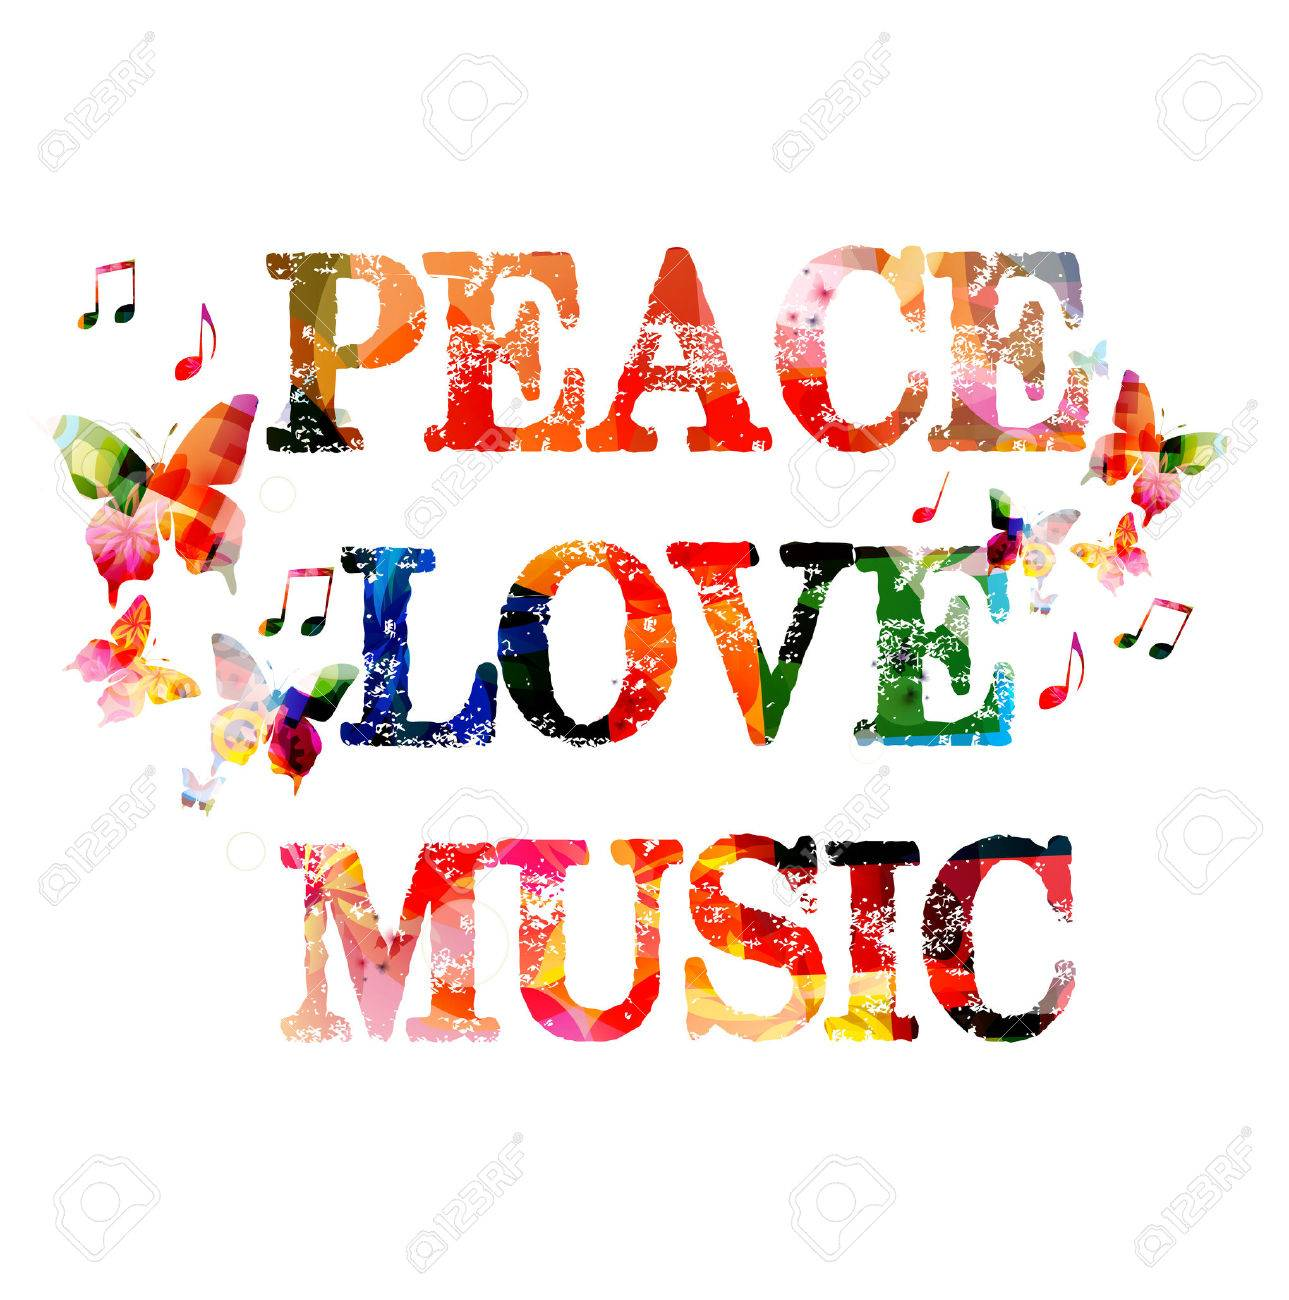 41,911 Peace And Love Cliparts, Stock Vector And Royalty Free Peace.